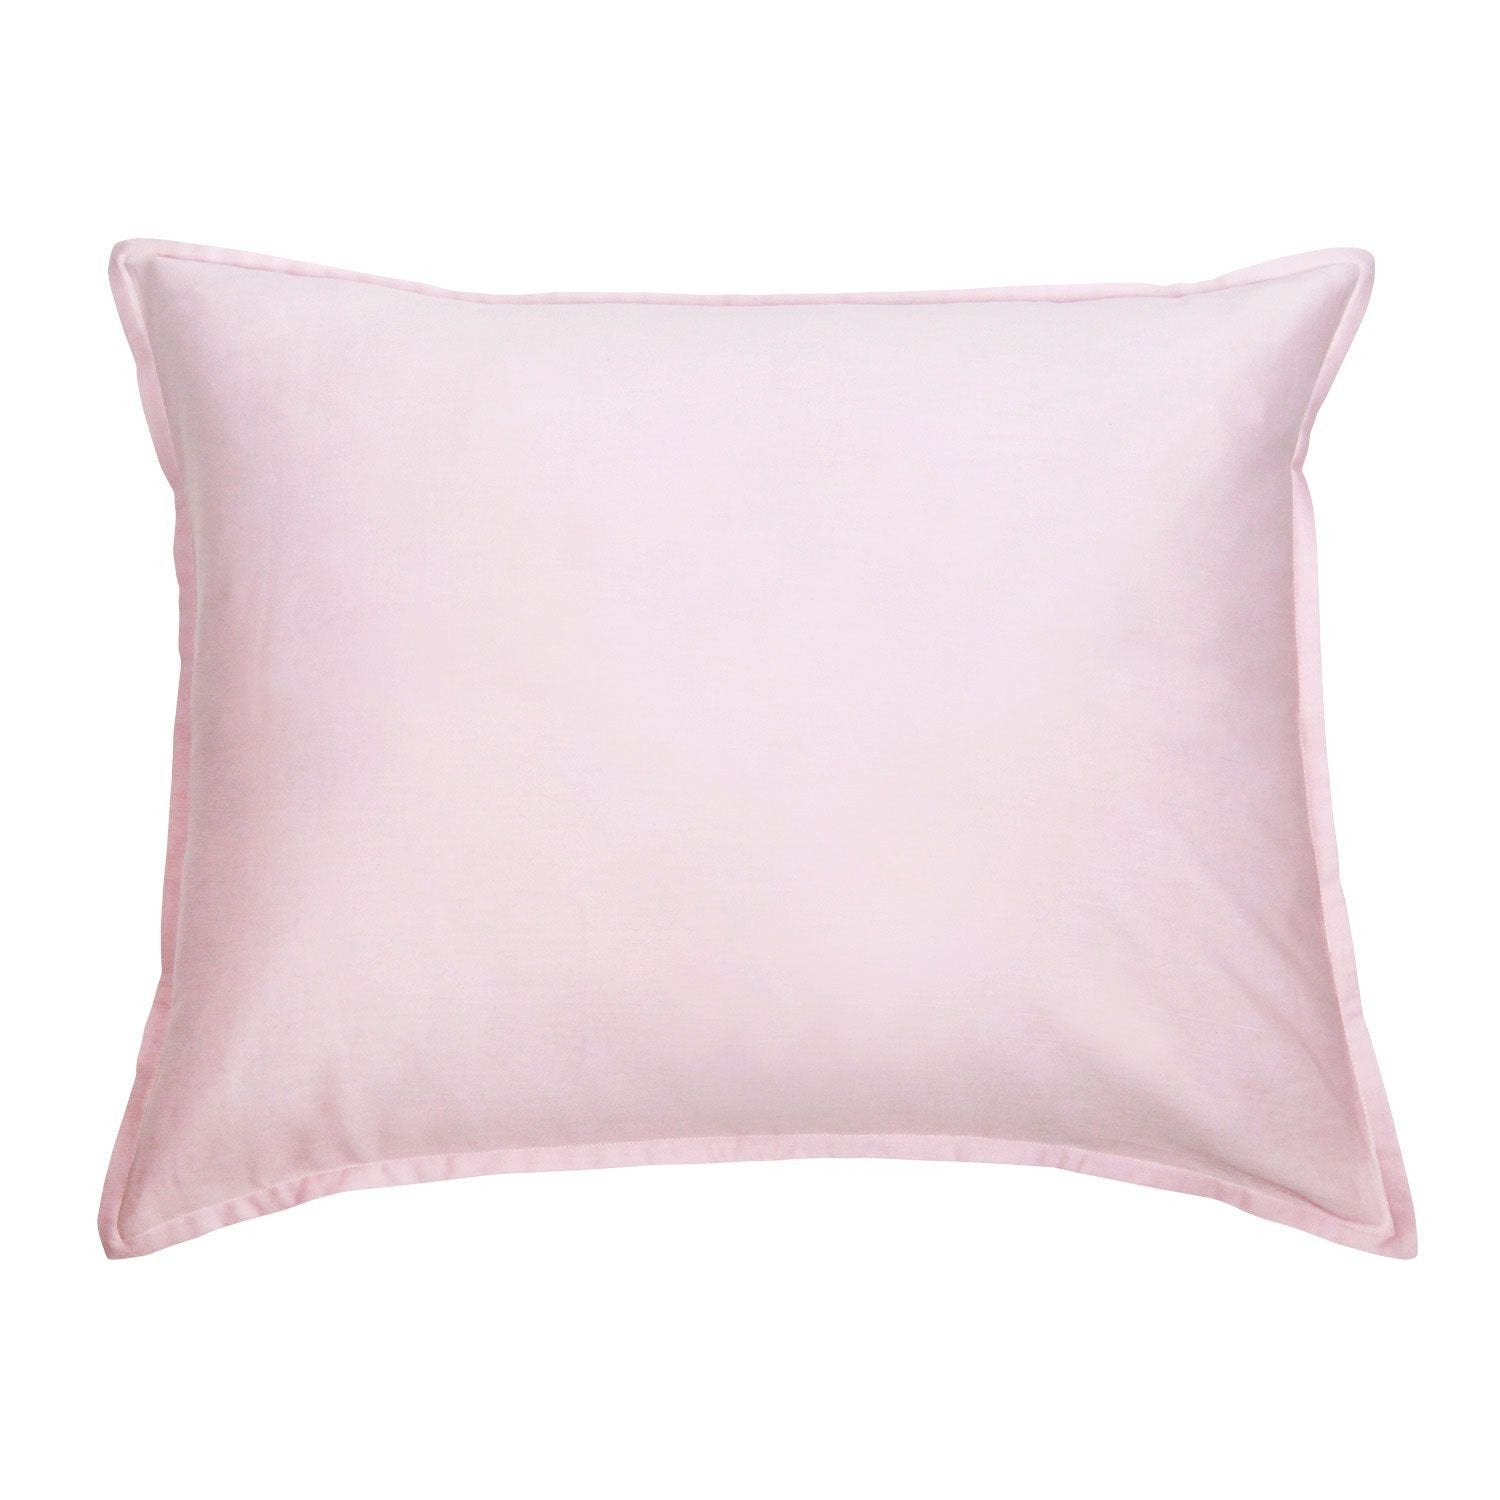 Pink and White Reversible Standard Sham